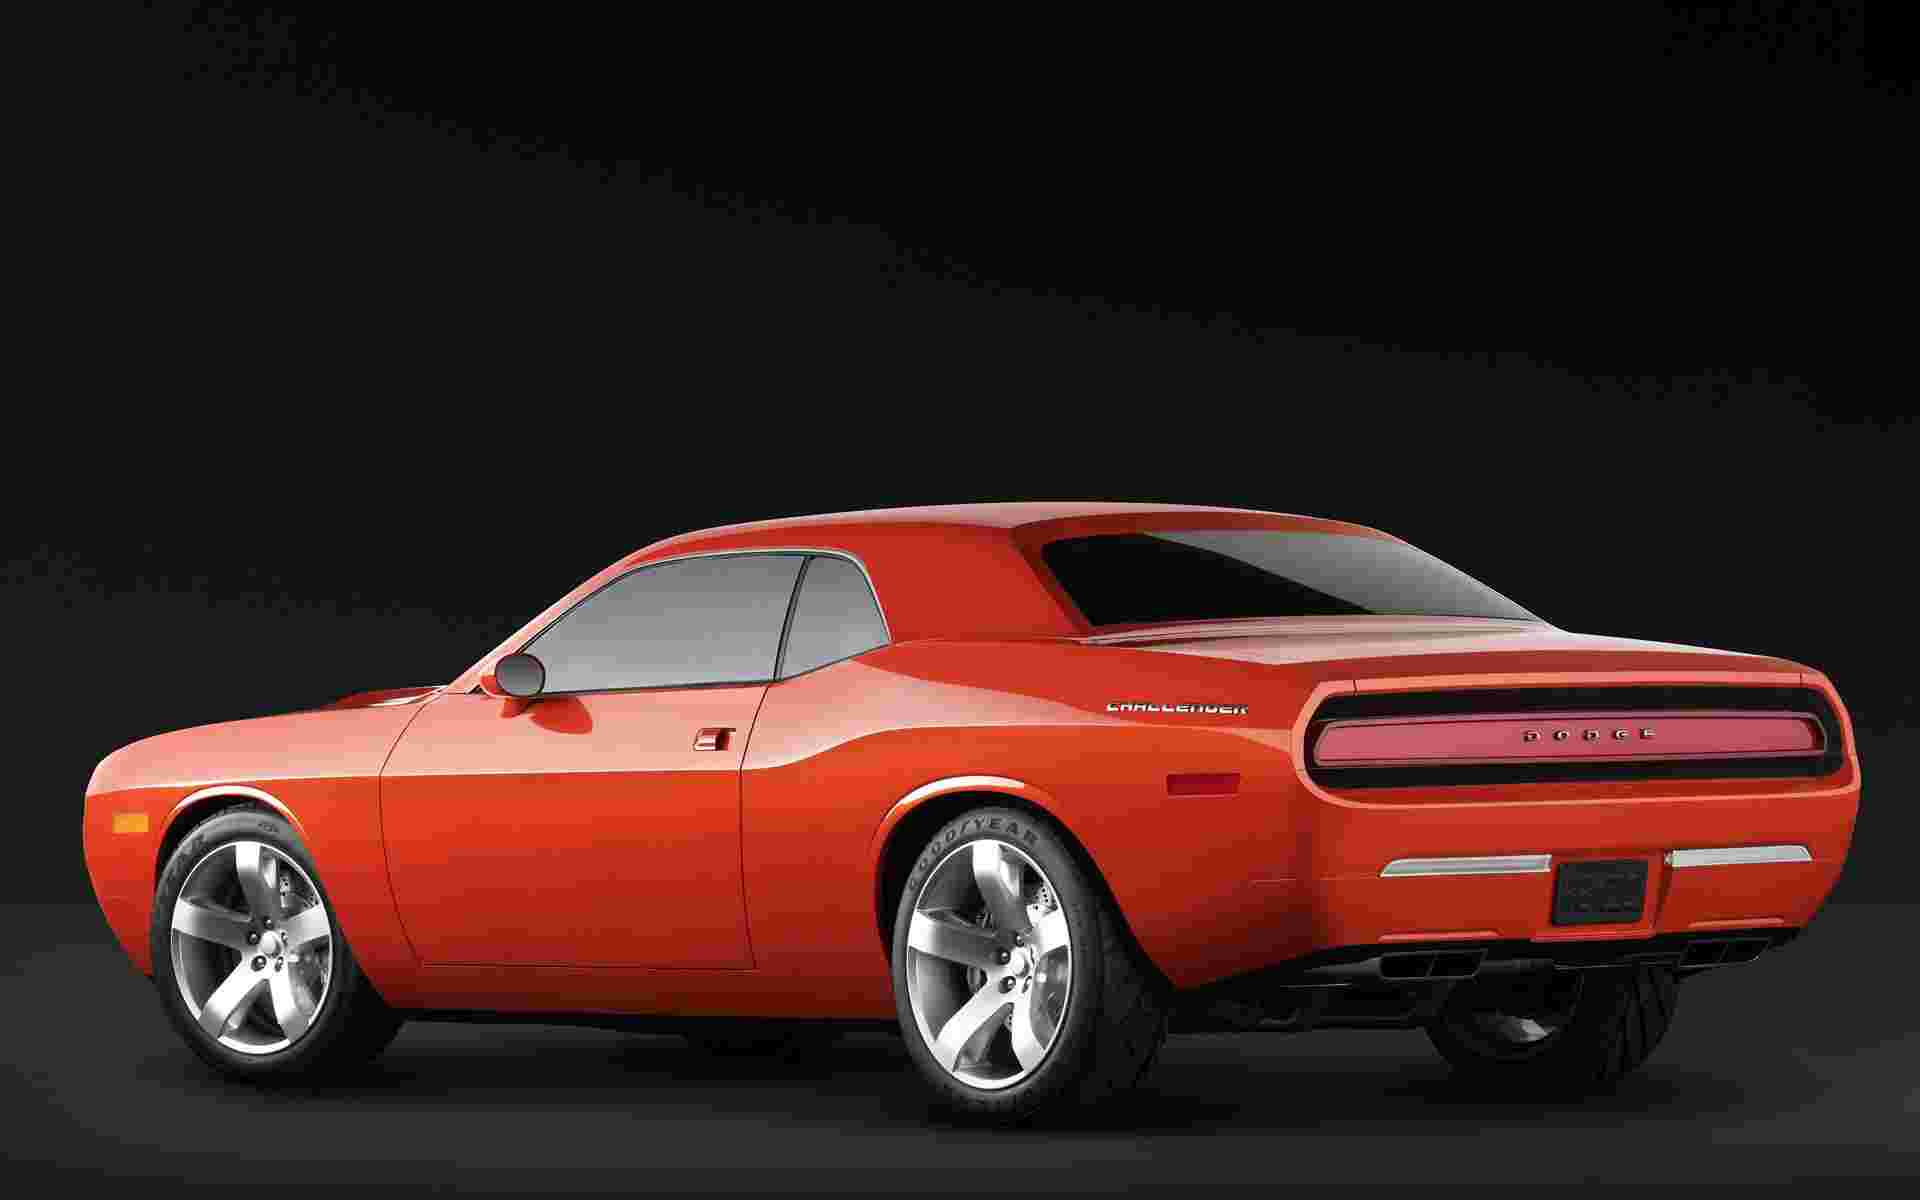 Dodge Challenger Concept widescreen 0030138 wallpaper   Dodge   Auto 1920x1200